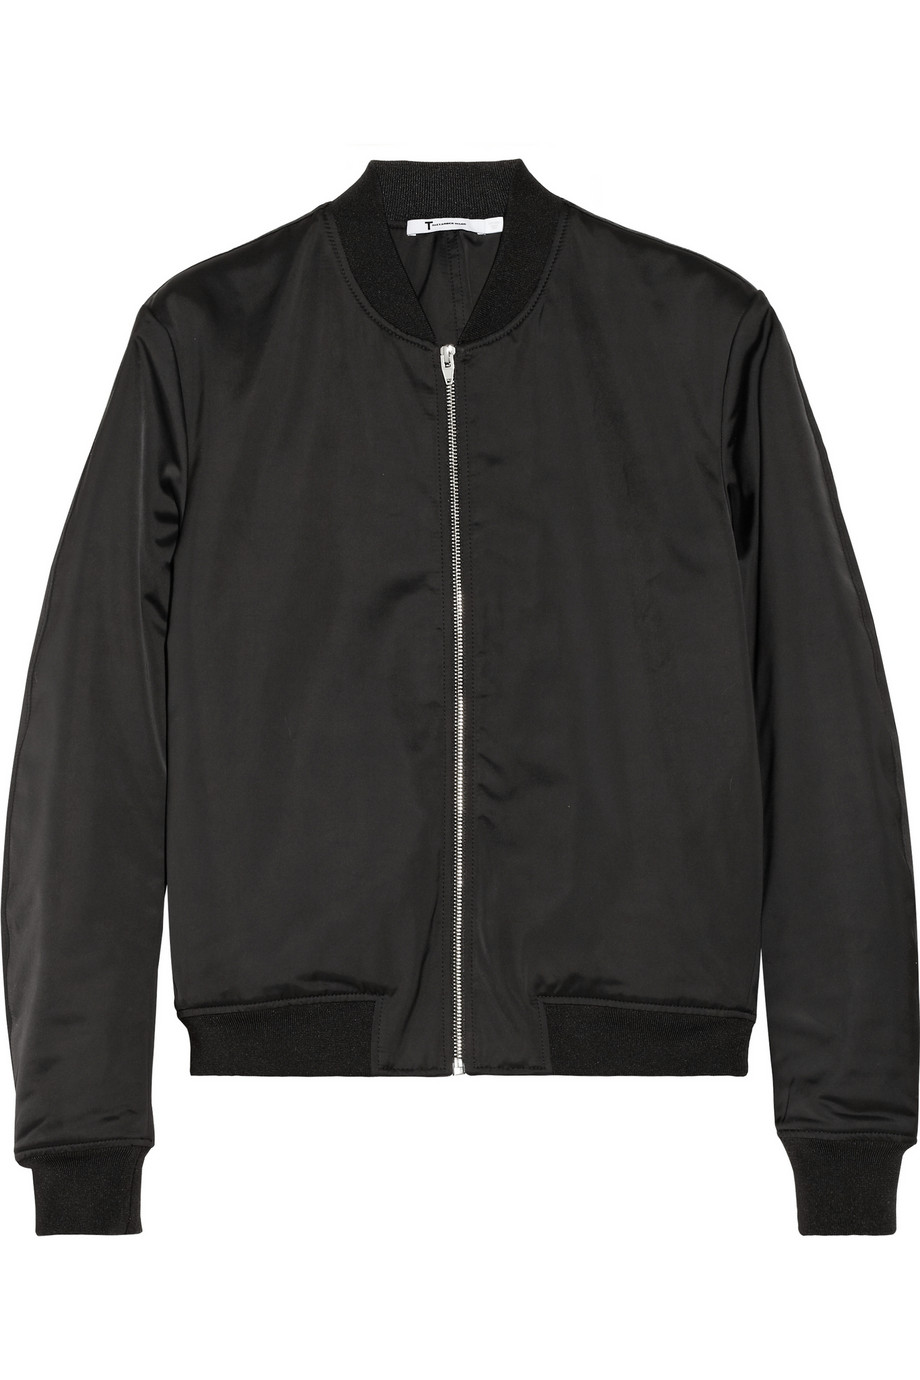 T by alexander wang satin bomber jacket – 55% at the outnet.com